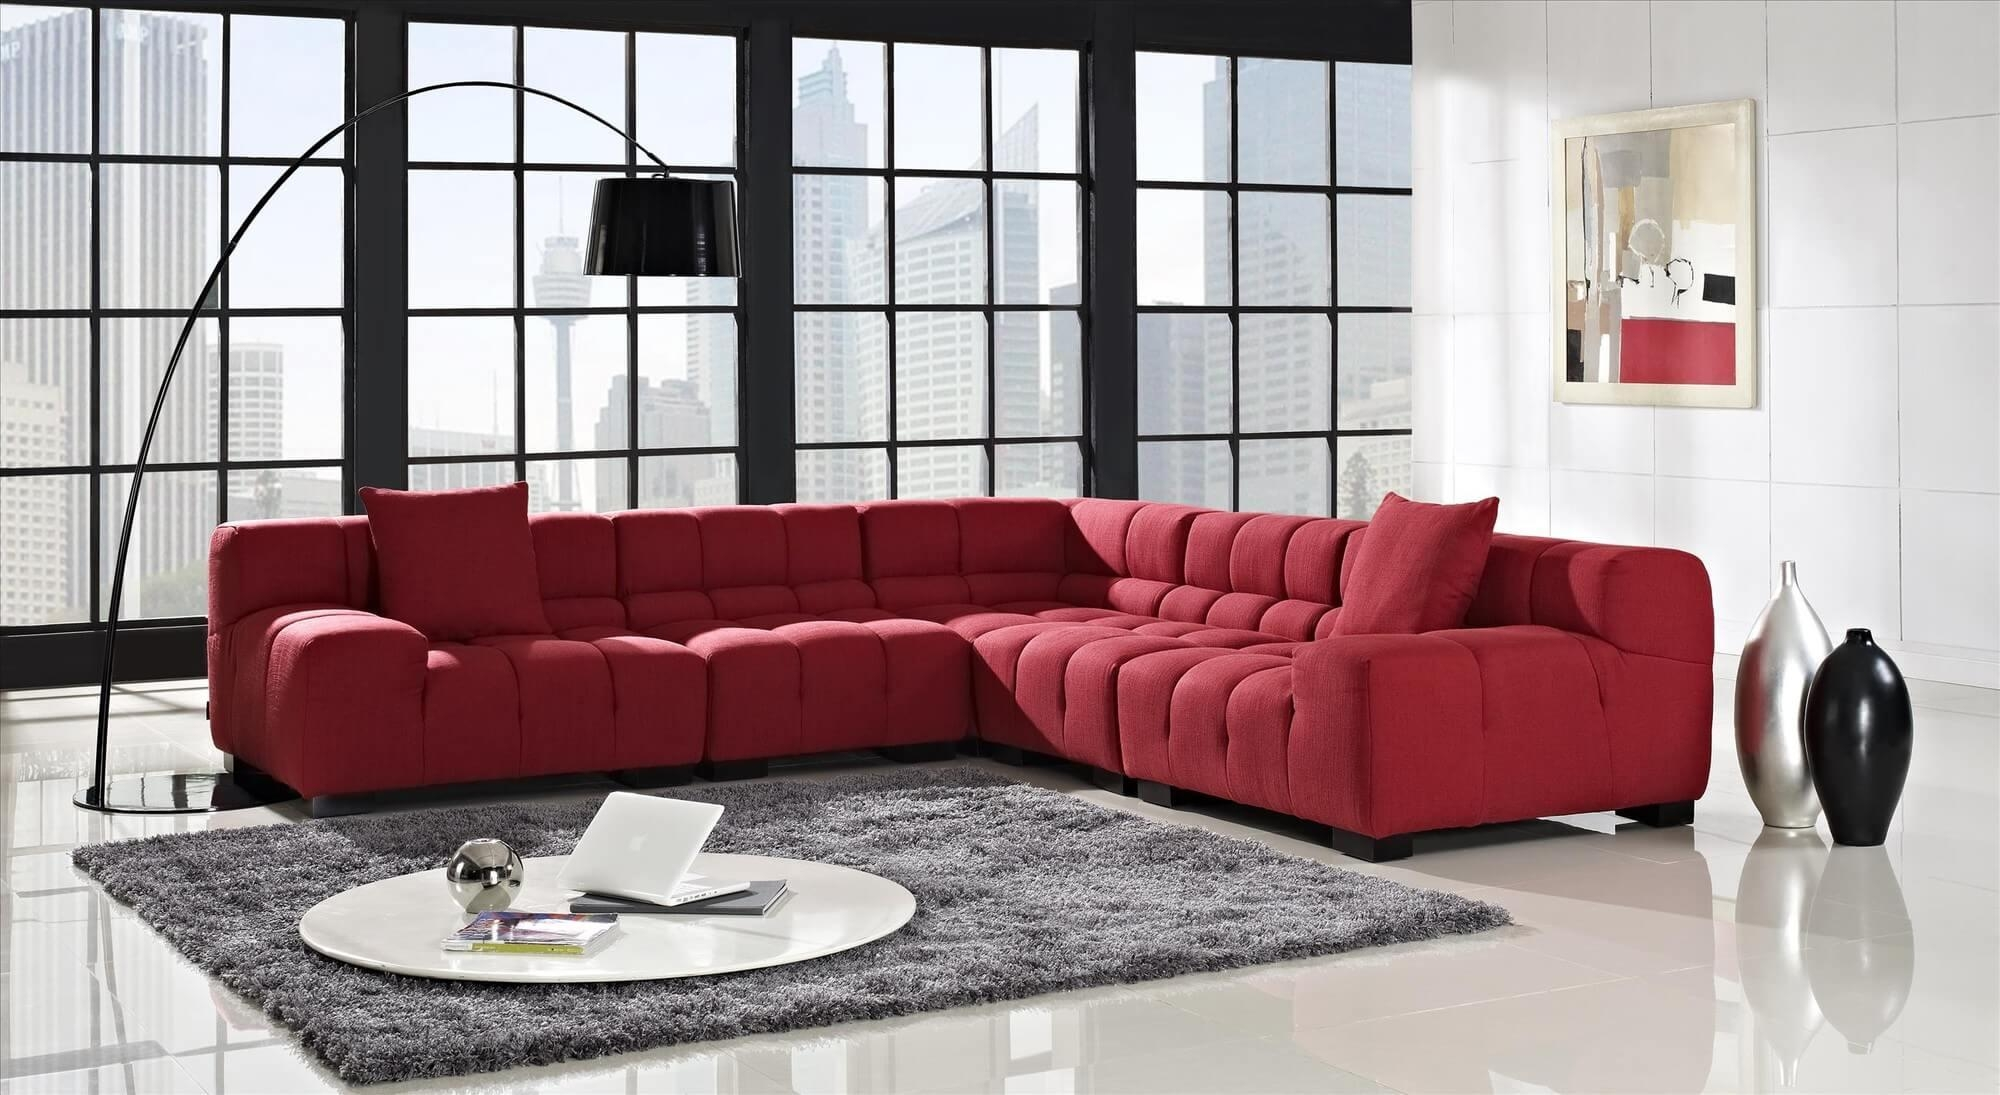 Good Tufted Sectionals Sofas 89 With Additional High End Leather within High End Leather Sectionals